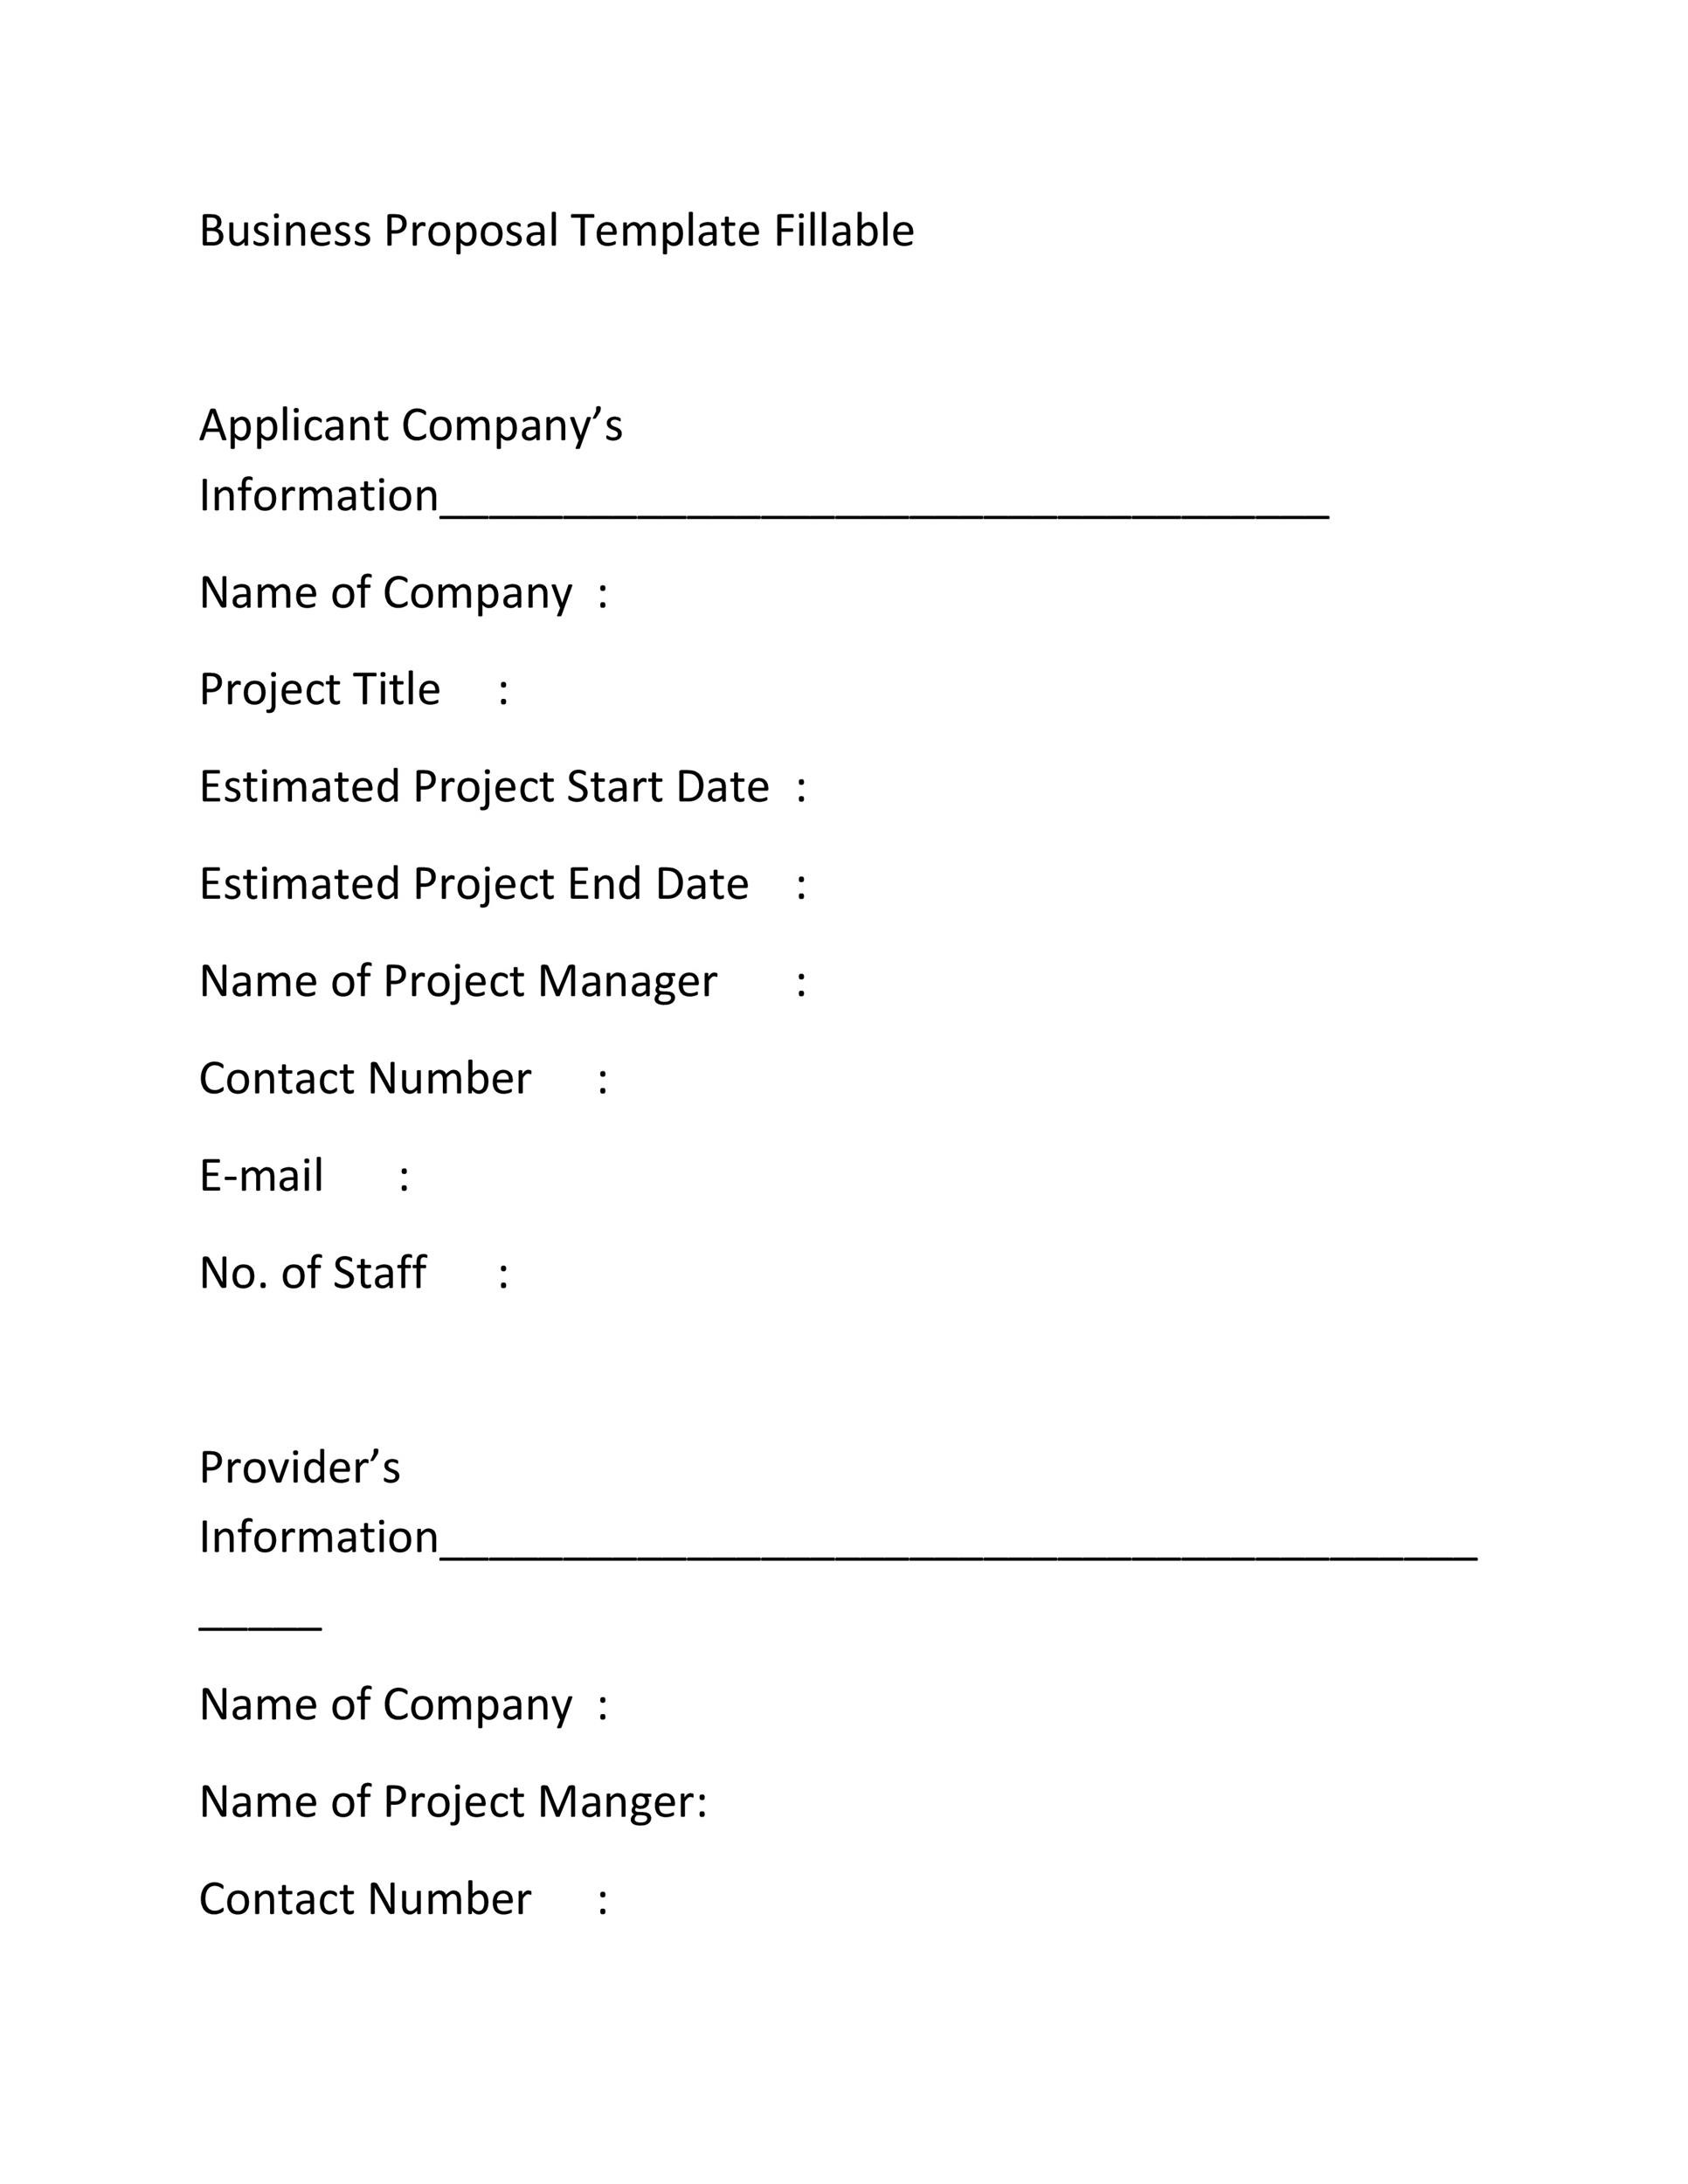 Business proposal Template 32